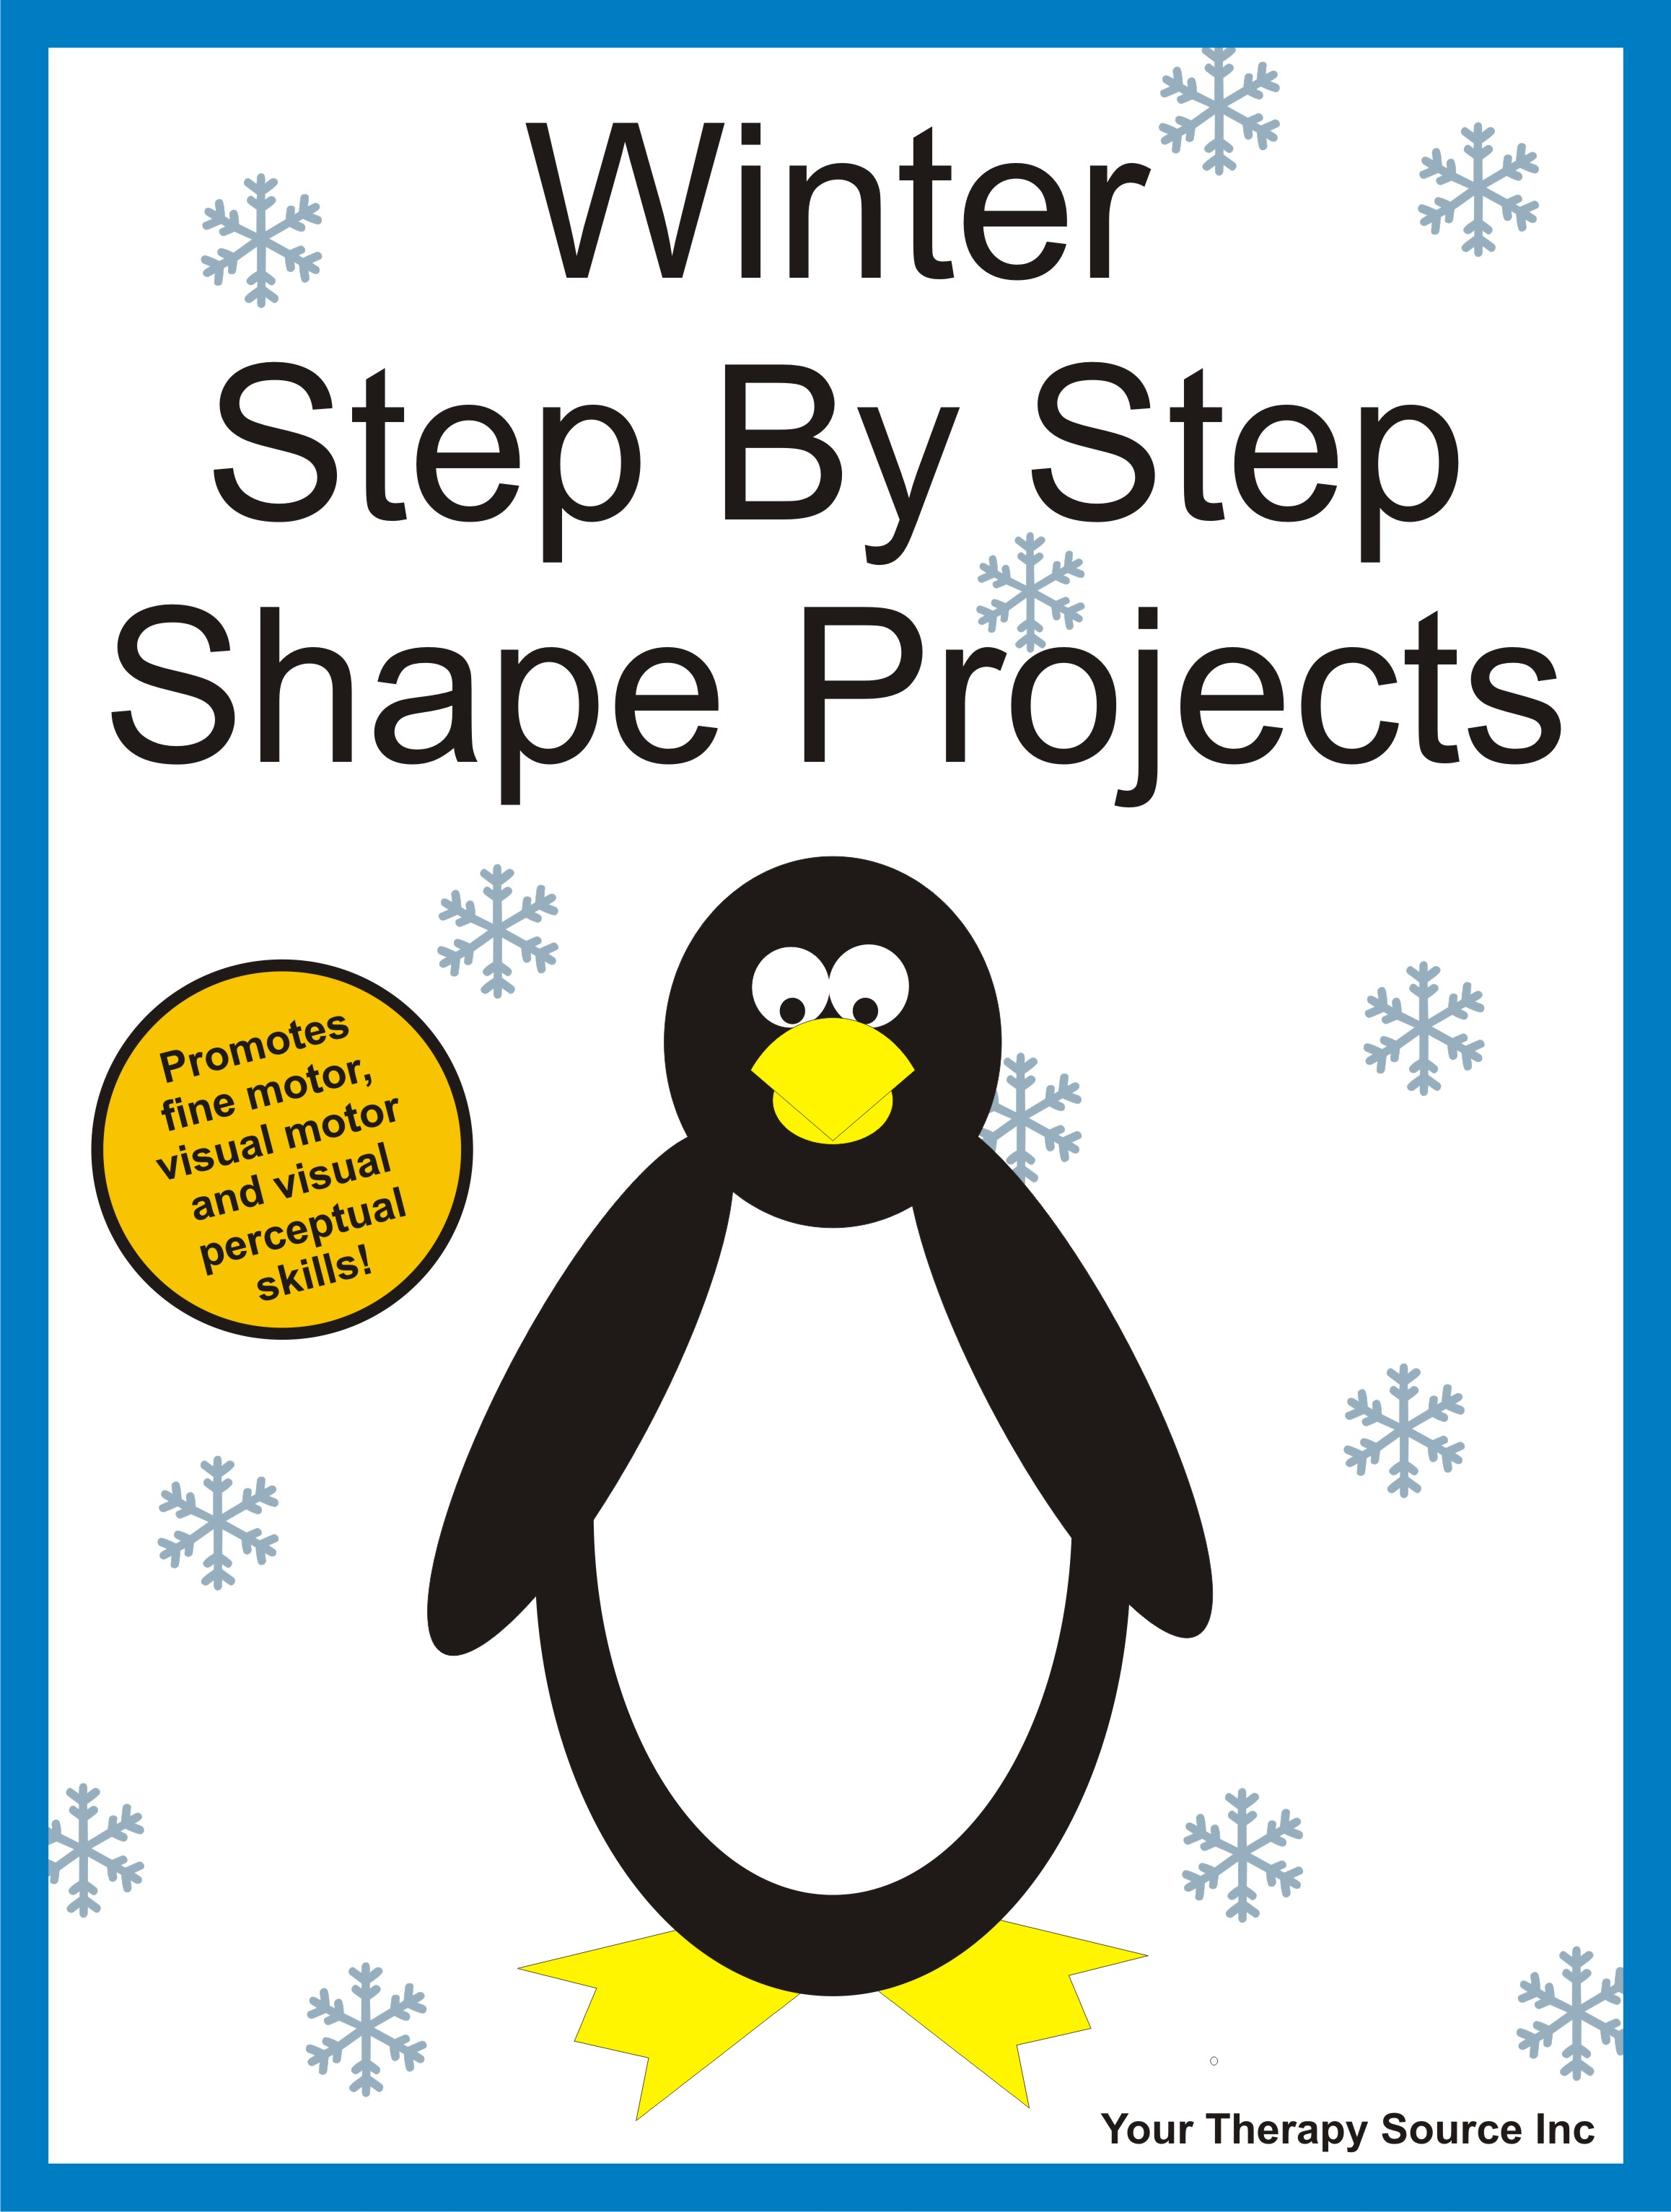 Winter Step By Step Shape Projects